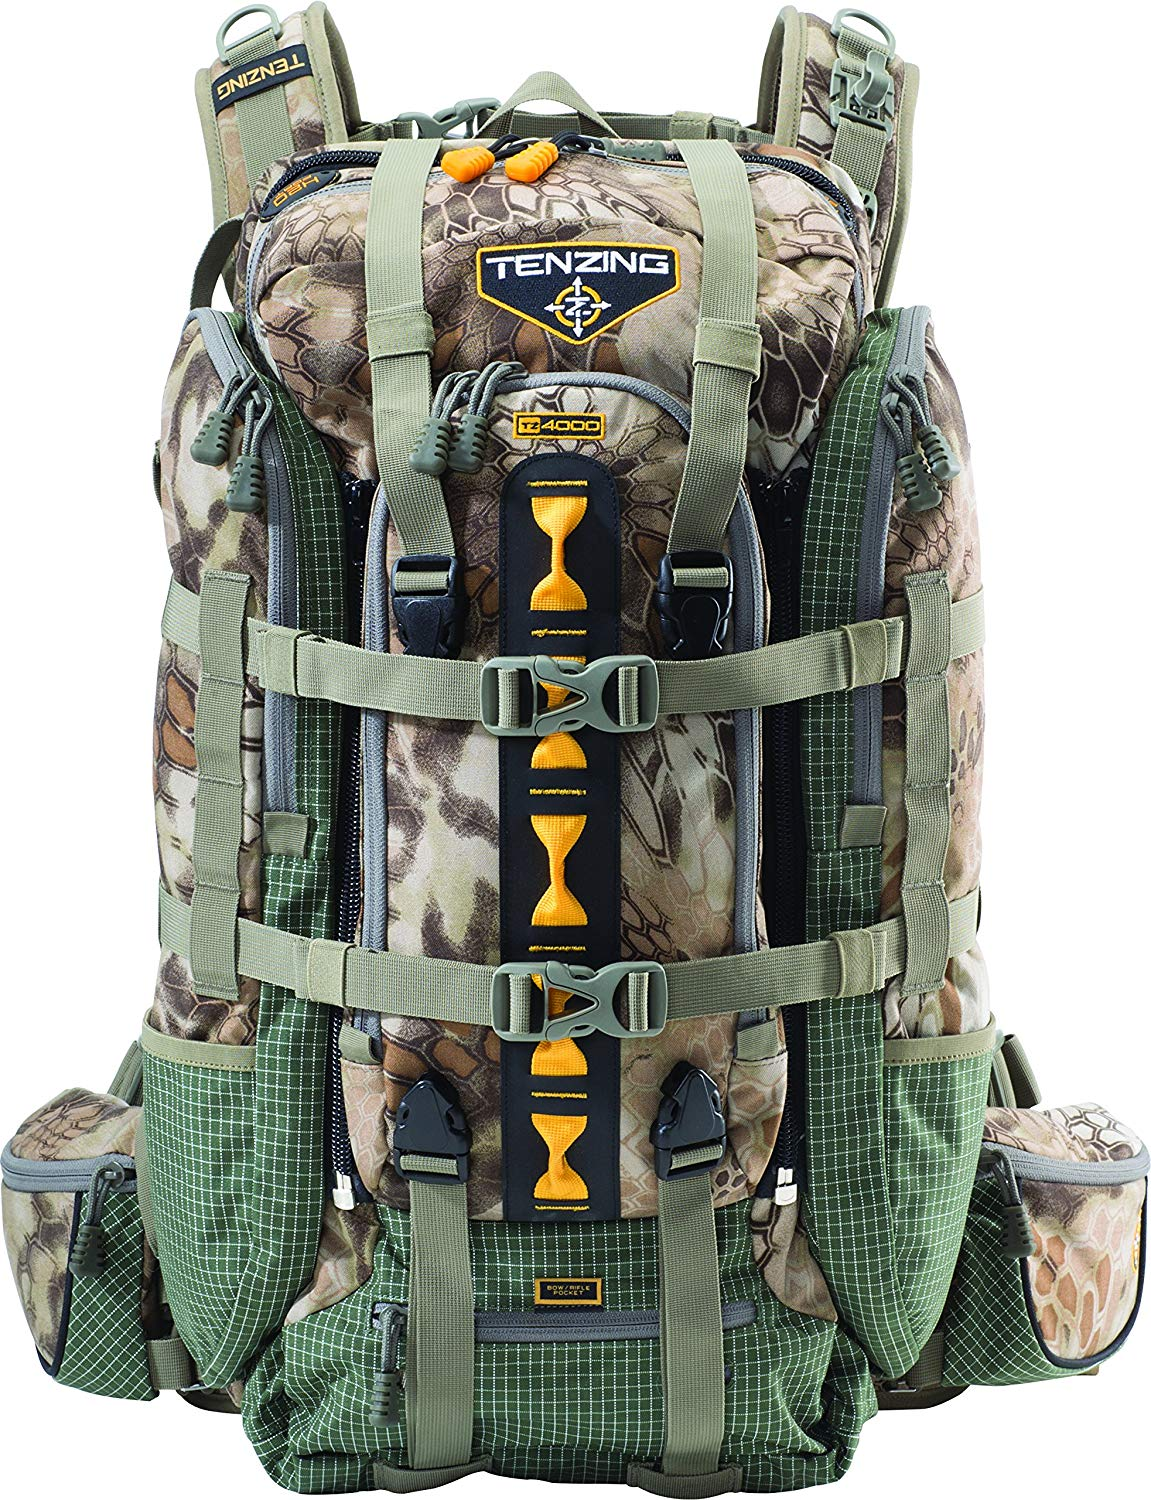 Tenzing TZ 4000 Hunting Backpack, Kryptek Highlander